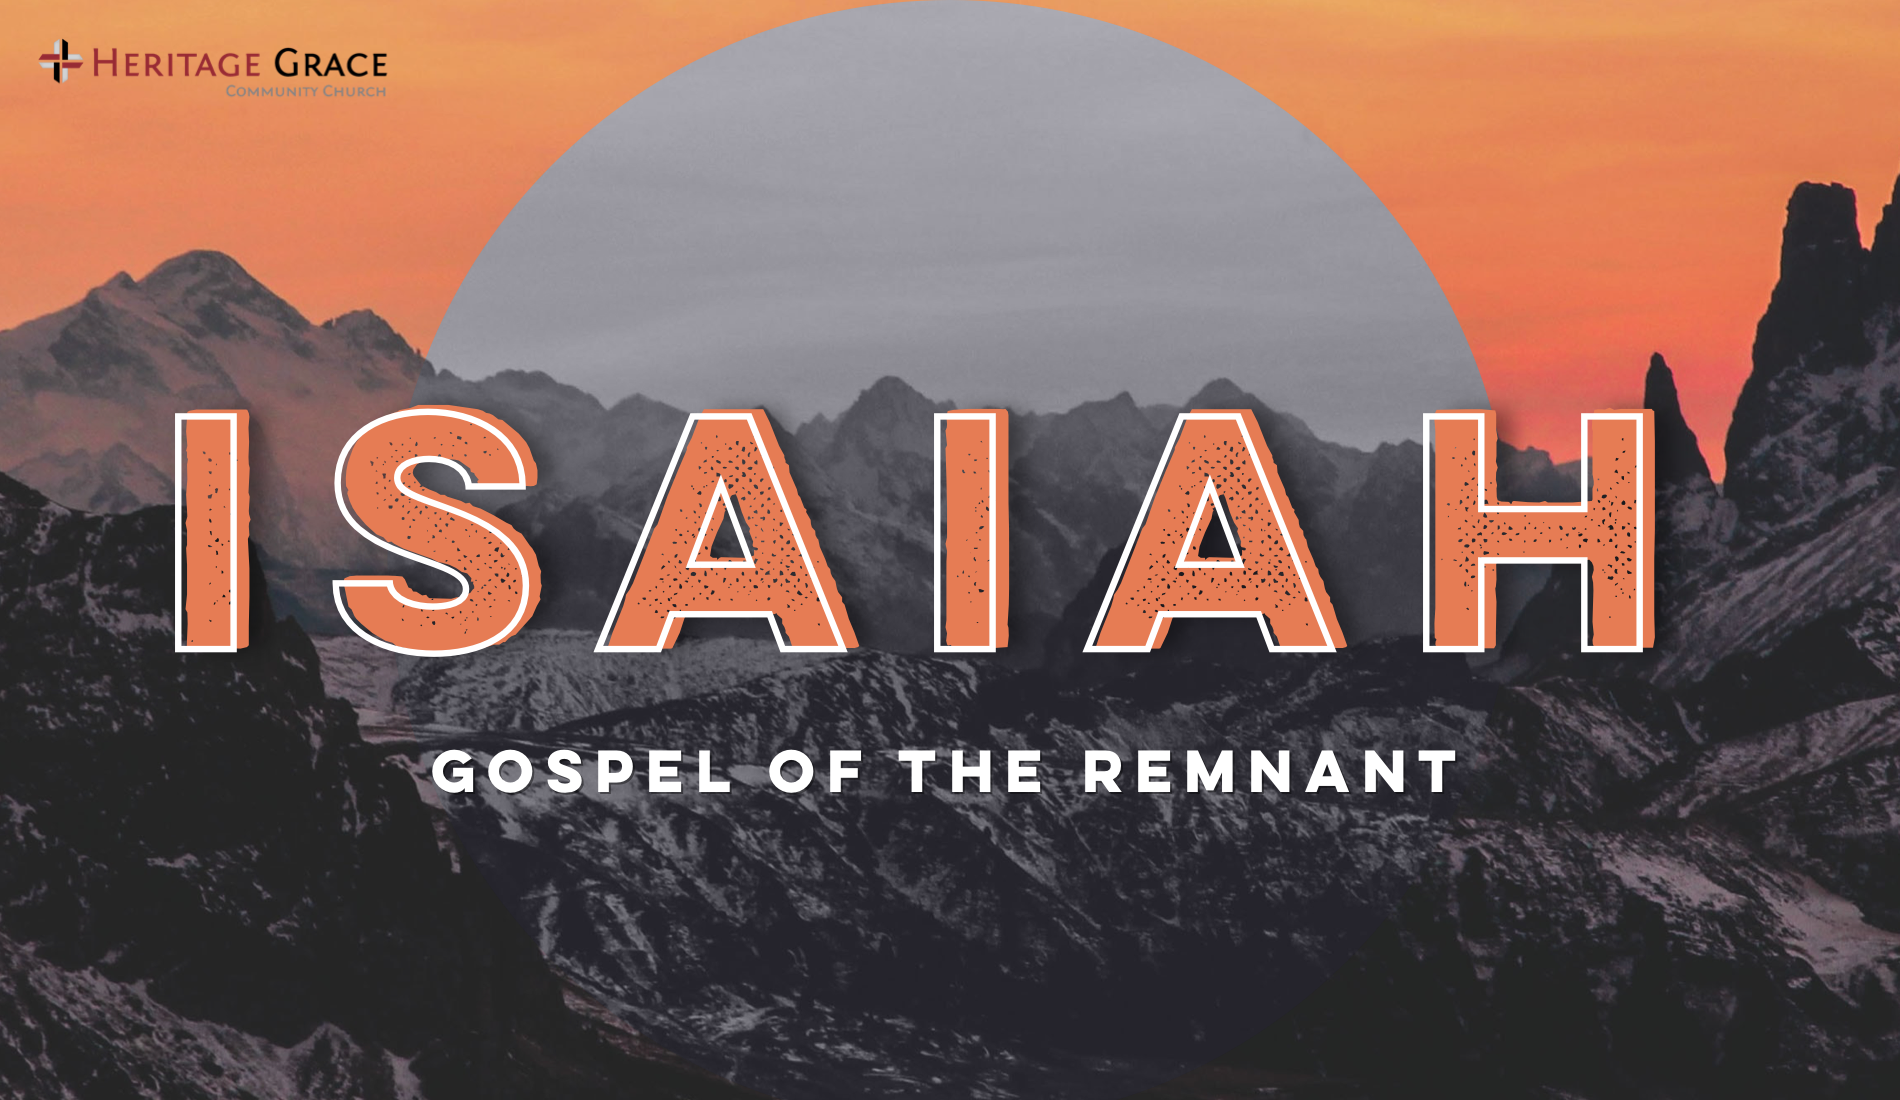 Gospel of the Remnant - Isaiah 10:20-23